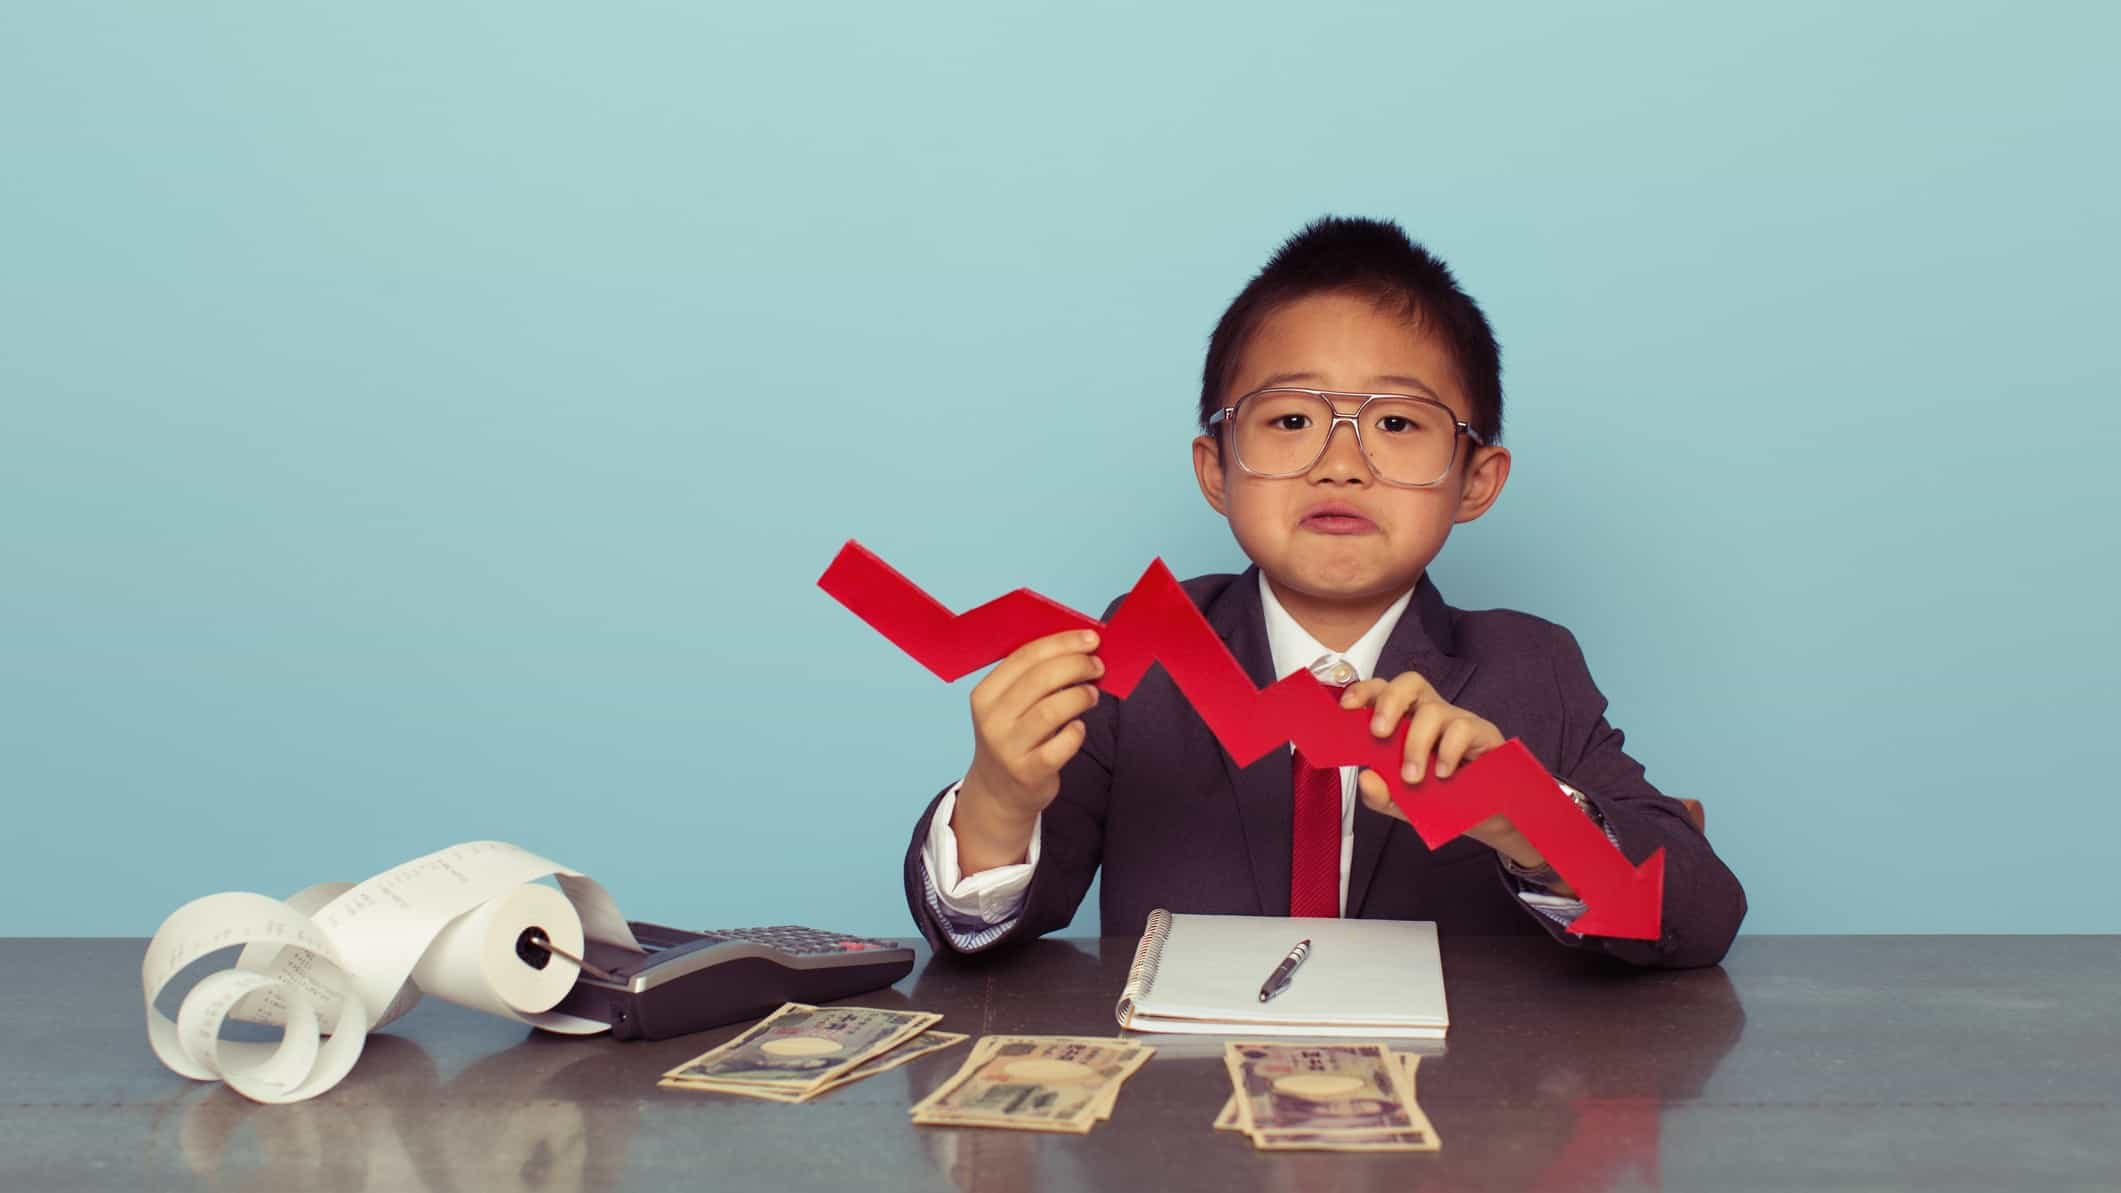 A child in full business suit holds a falling, zigzagged red arrow pointing downwards while sitting at a desk that holds cash and an old-fashioned adding machine with paper spooling.